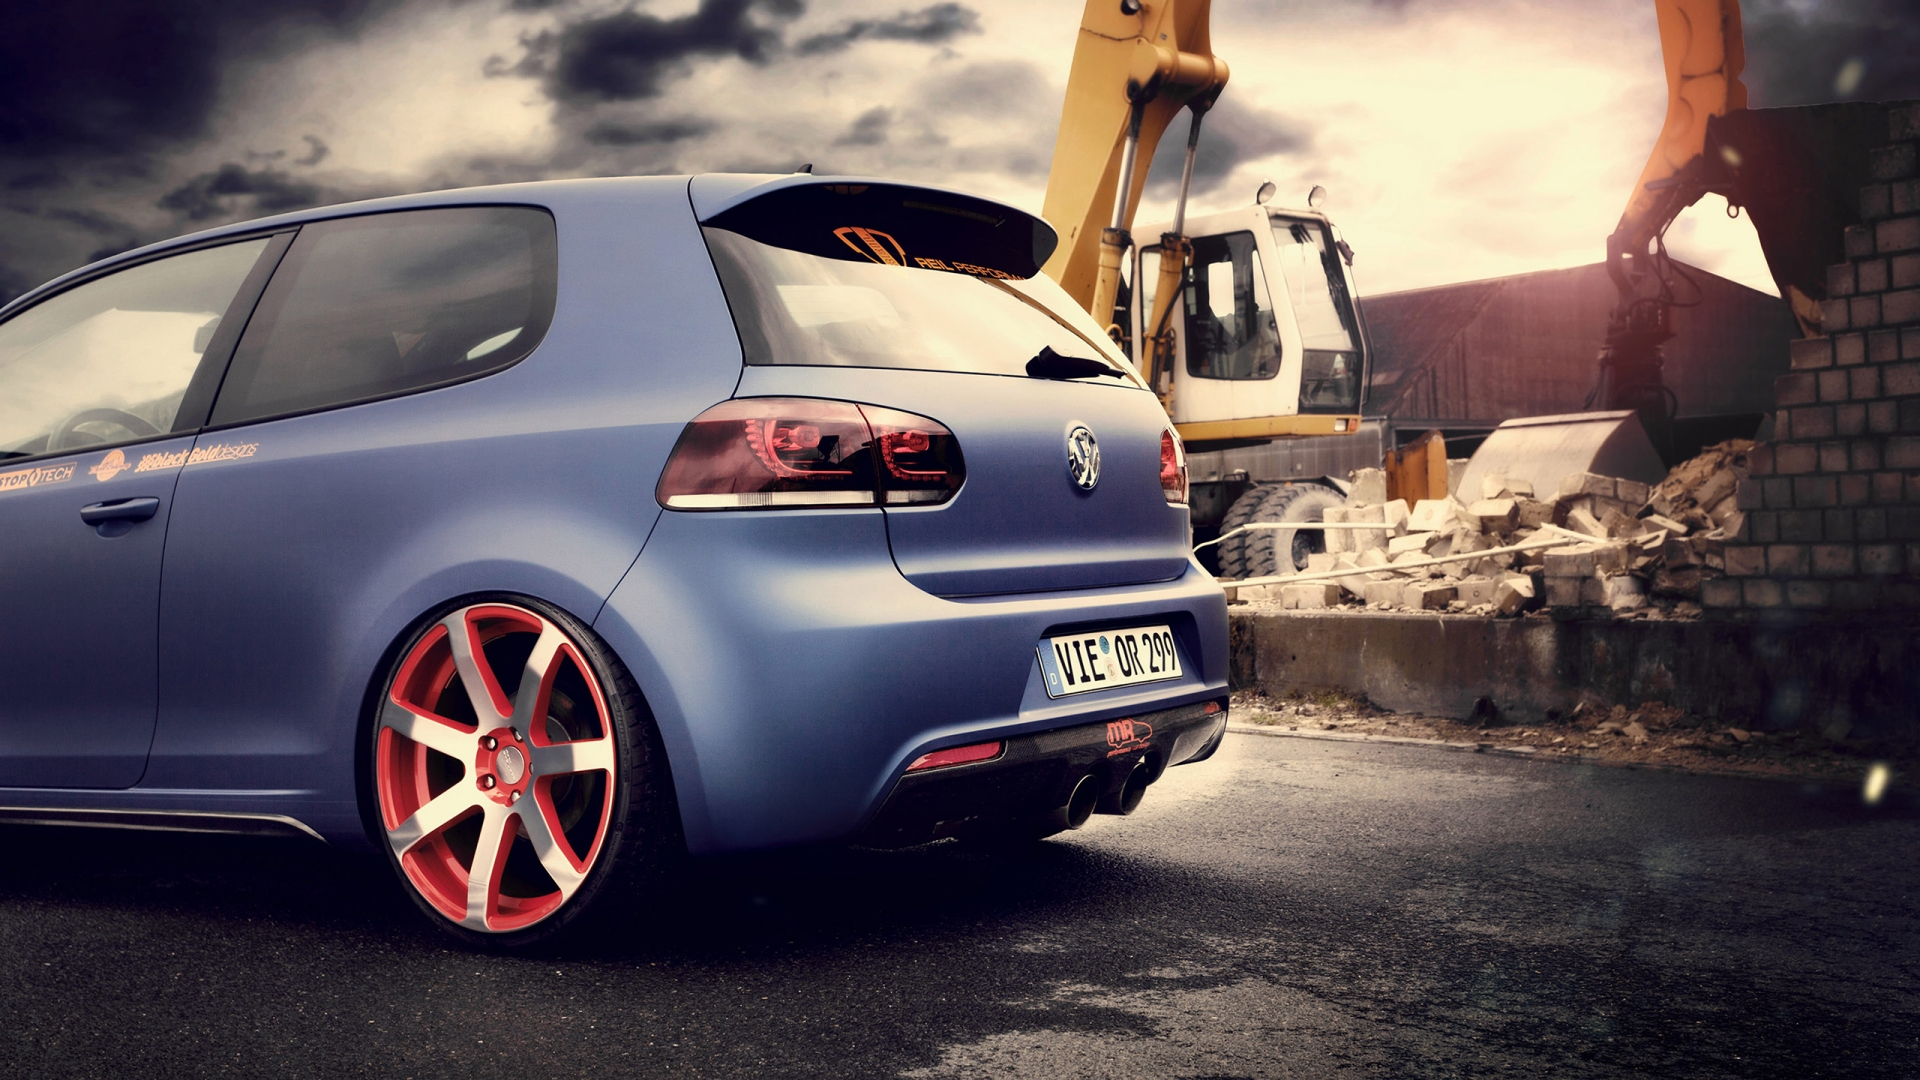 Volkswagen Golf Wallpaper Hd - HD Desktop Wallpapers